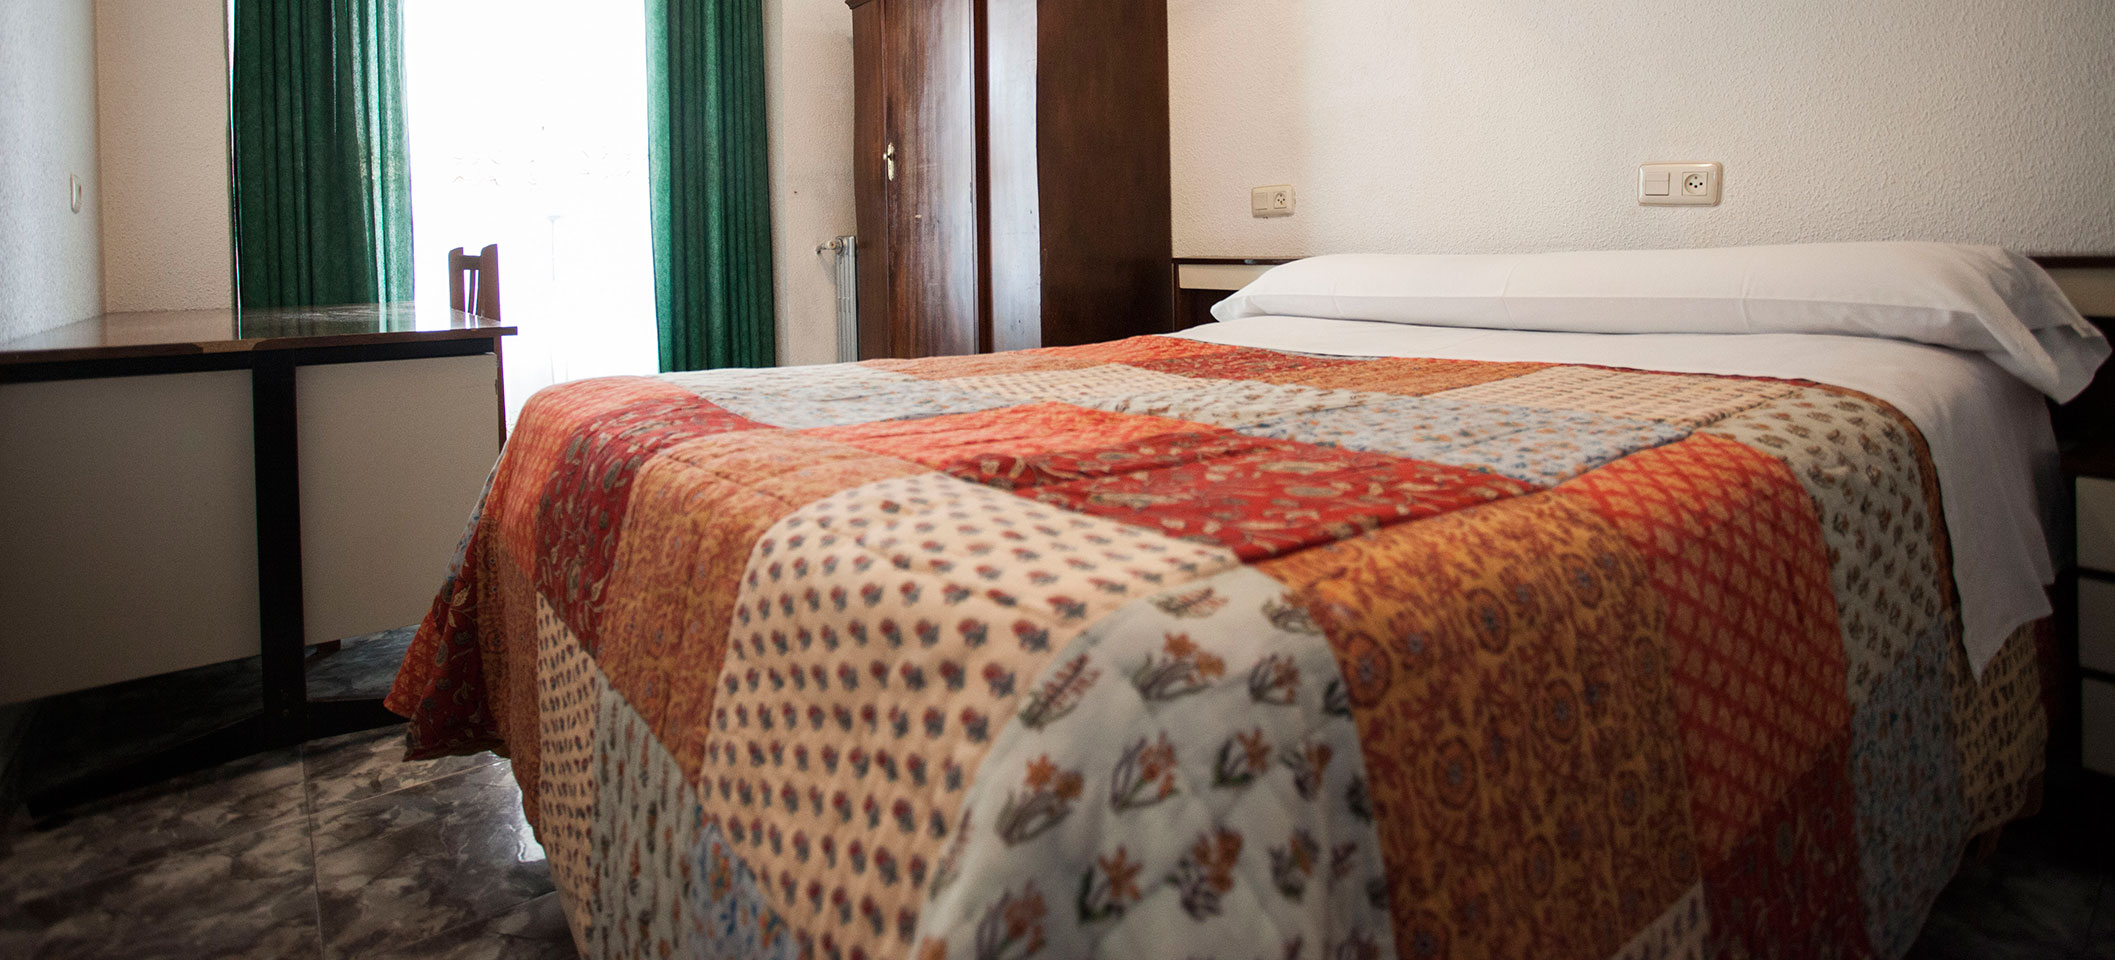 Hostal economico Madrid